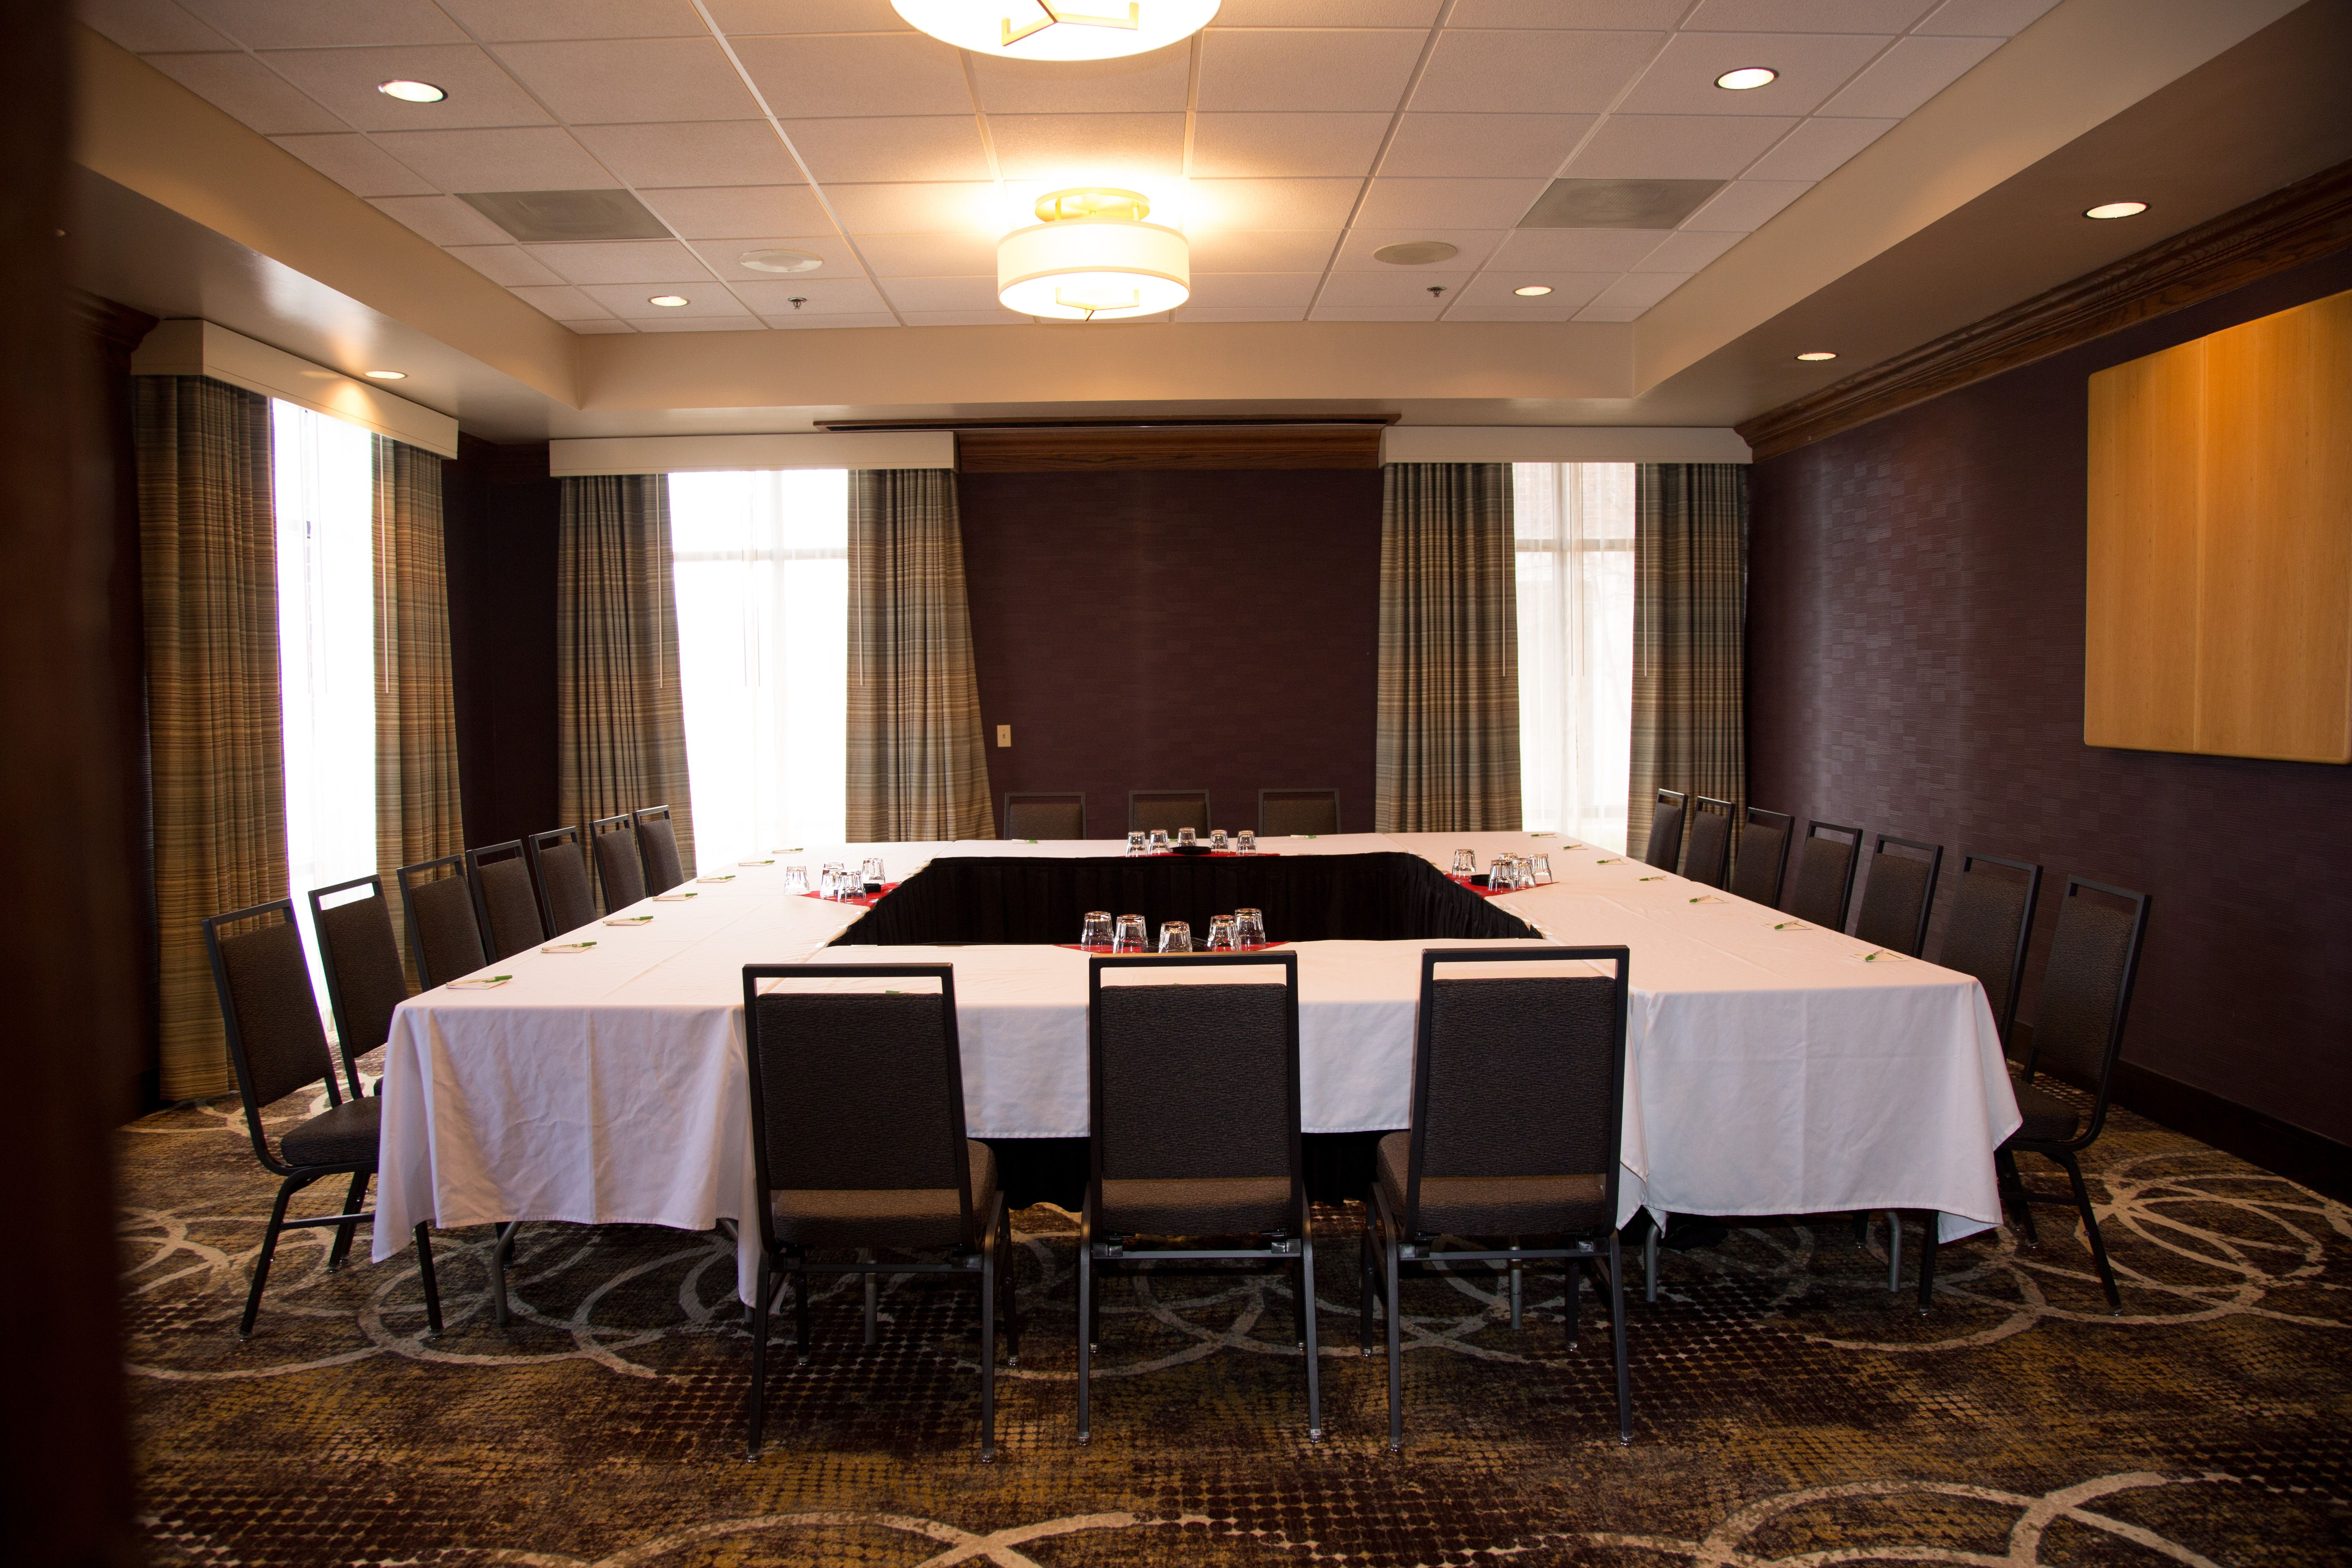 Board Room Photo Claussen Photography Rapid City Hotel Meetings Holiday Inn Rapid City Rushmore Plaza Hotel Meetings And Conventions Hotel Meeting Room Rapid City Hotels